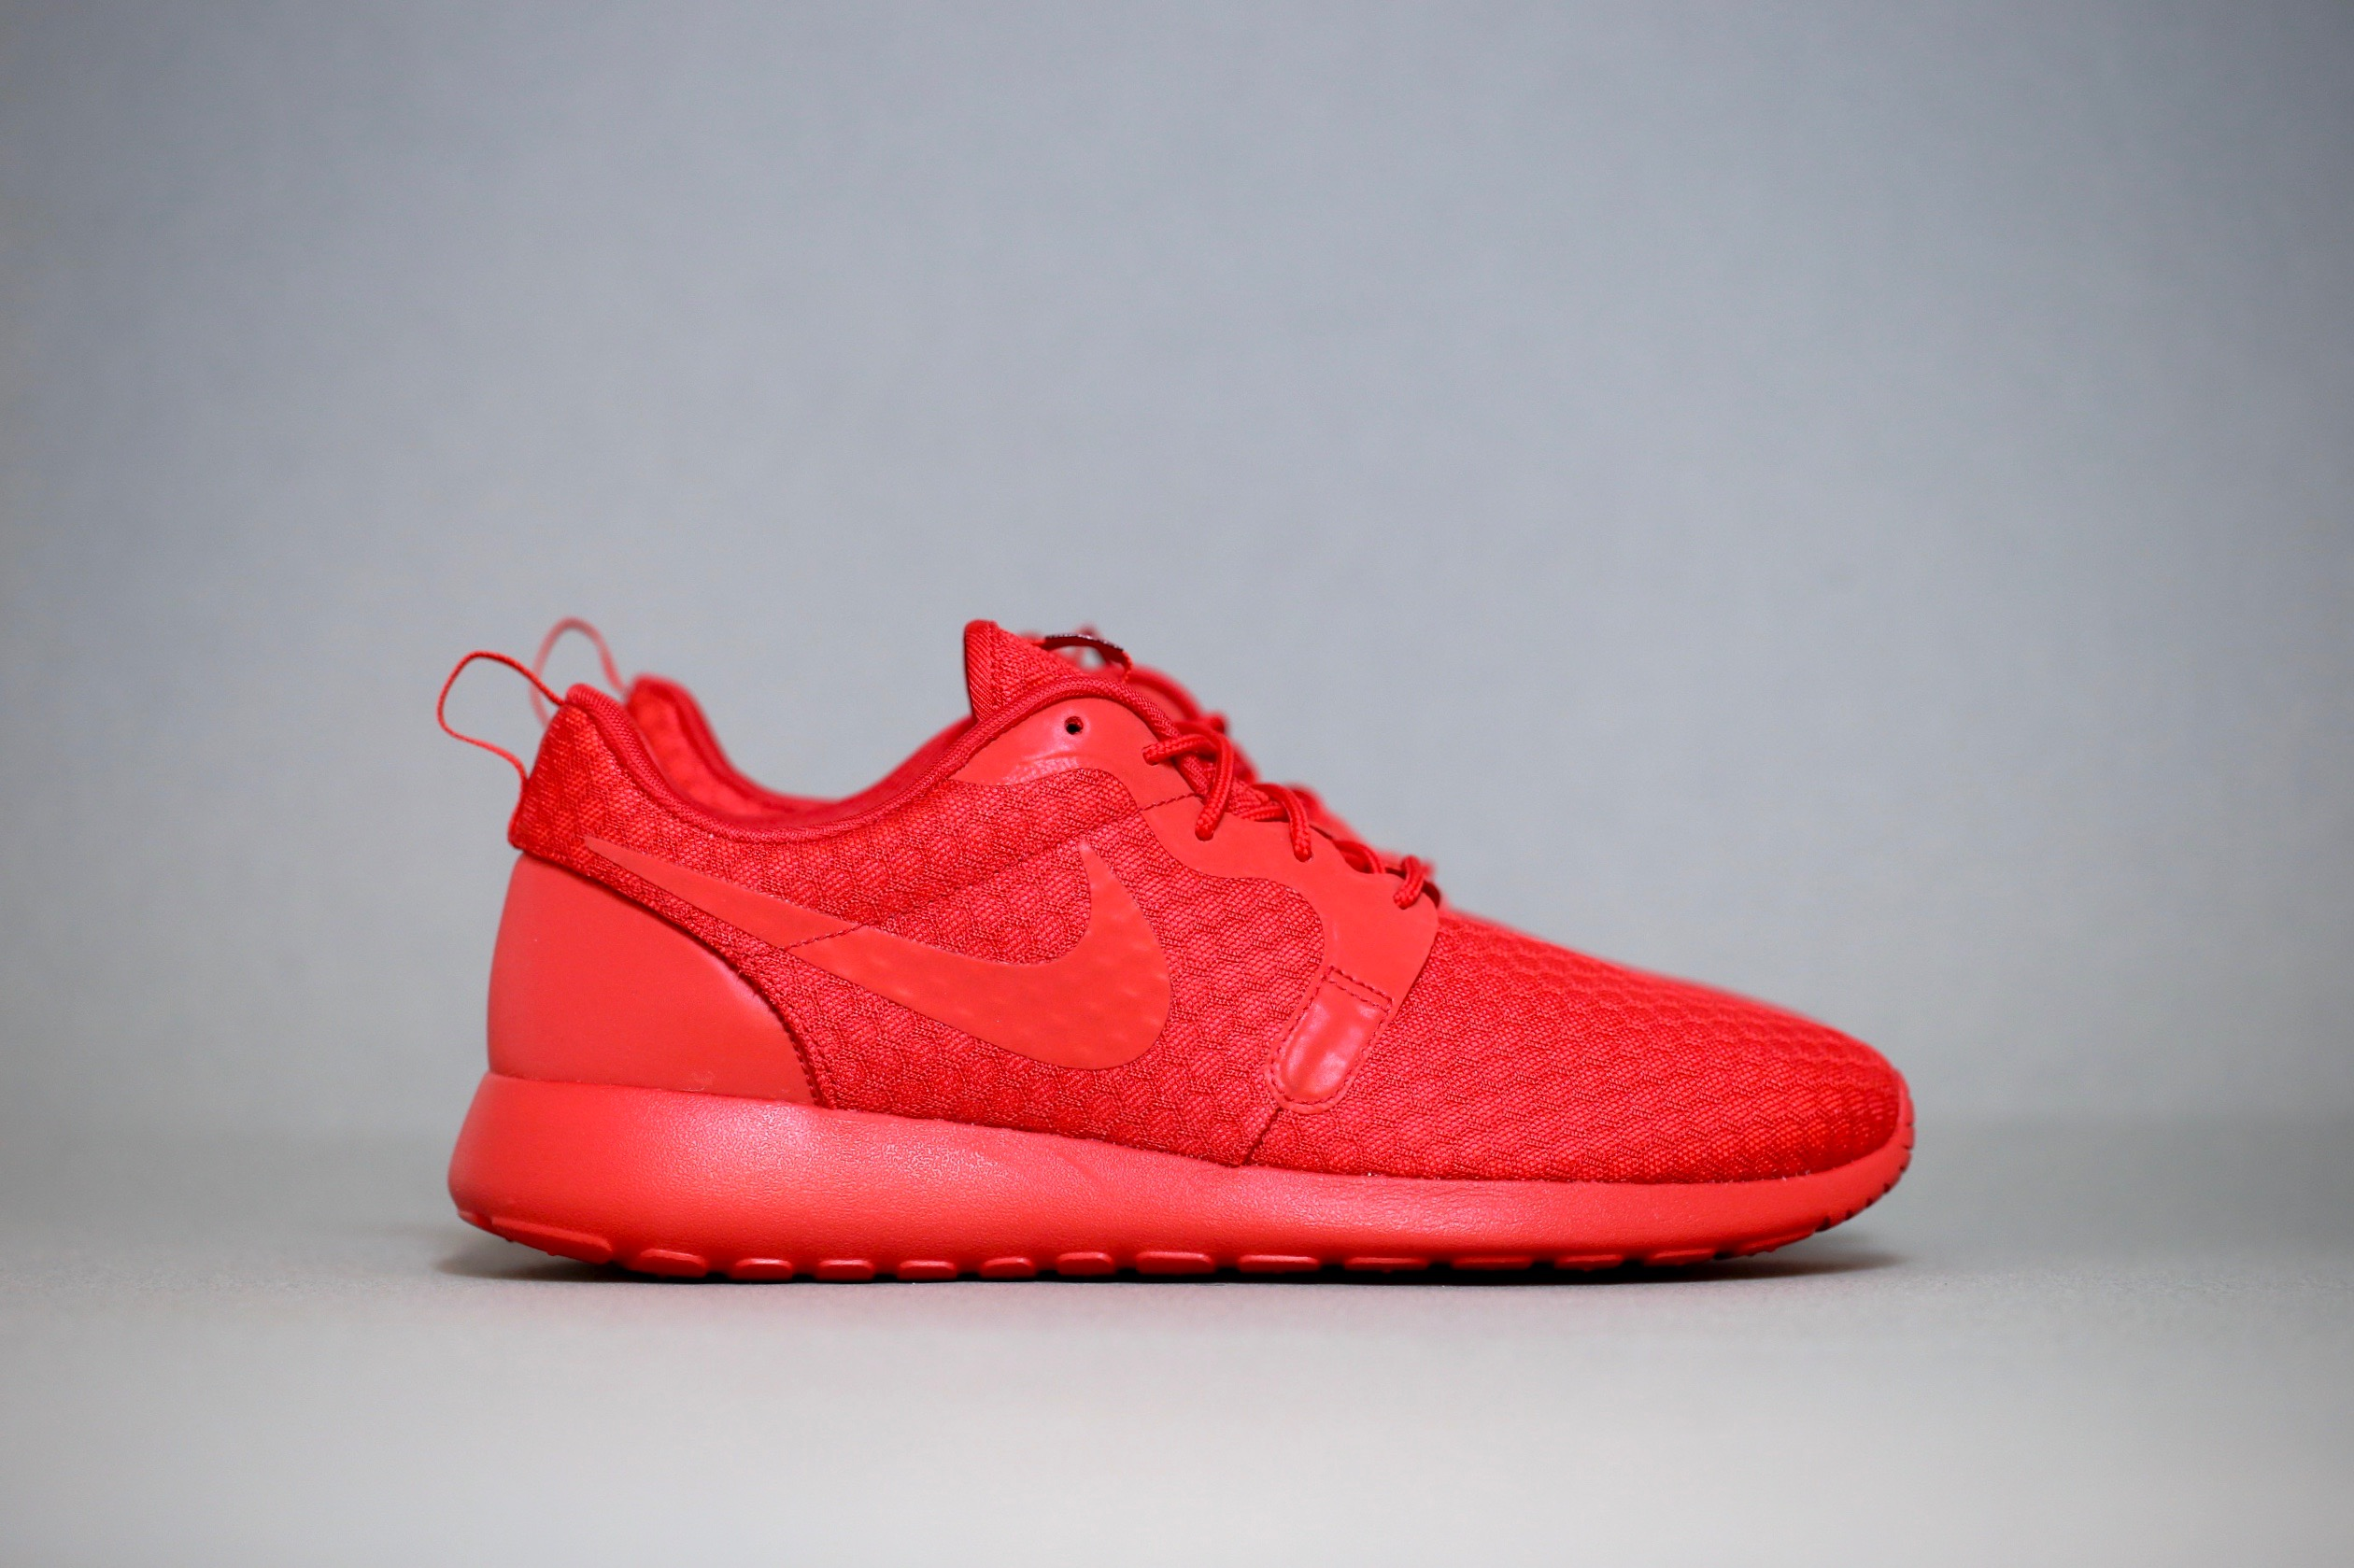 653b910e091c Nike Roshe One Hyperfuse – University Red   University Red   Black ...